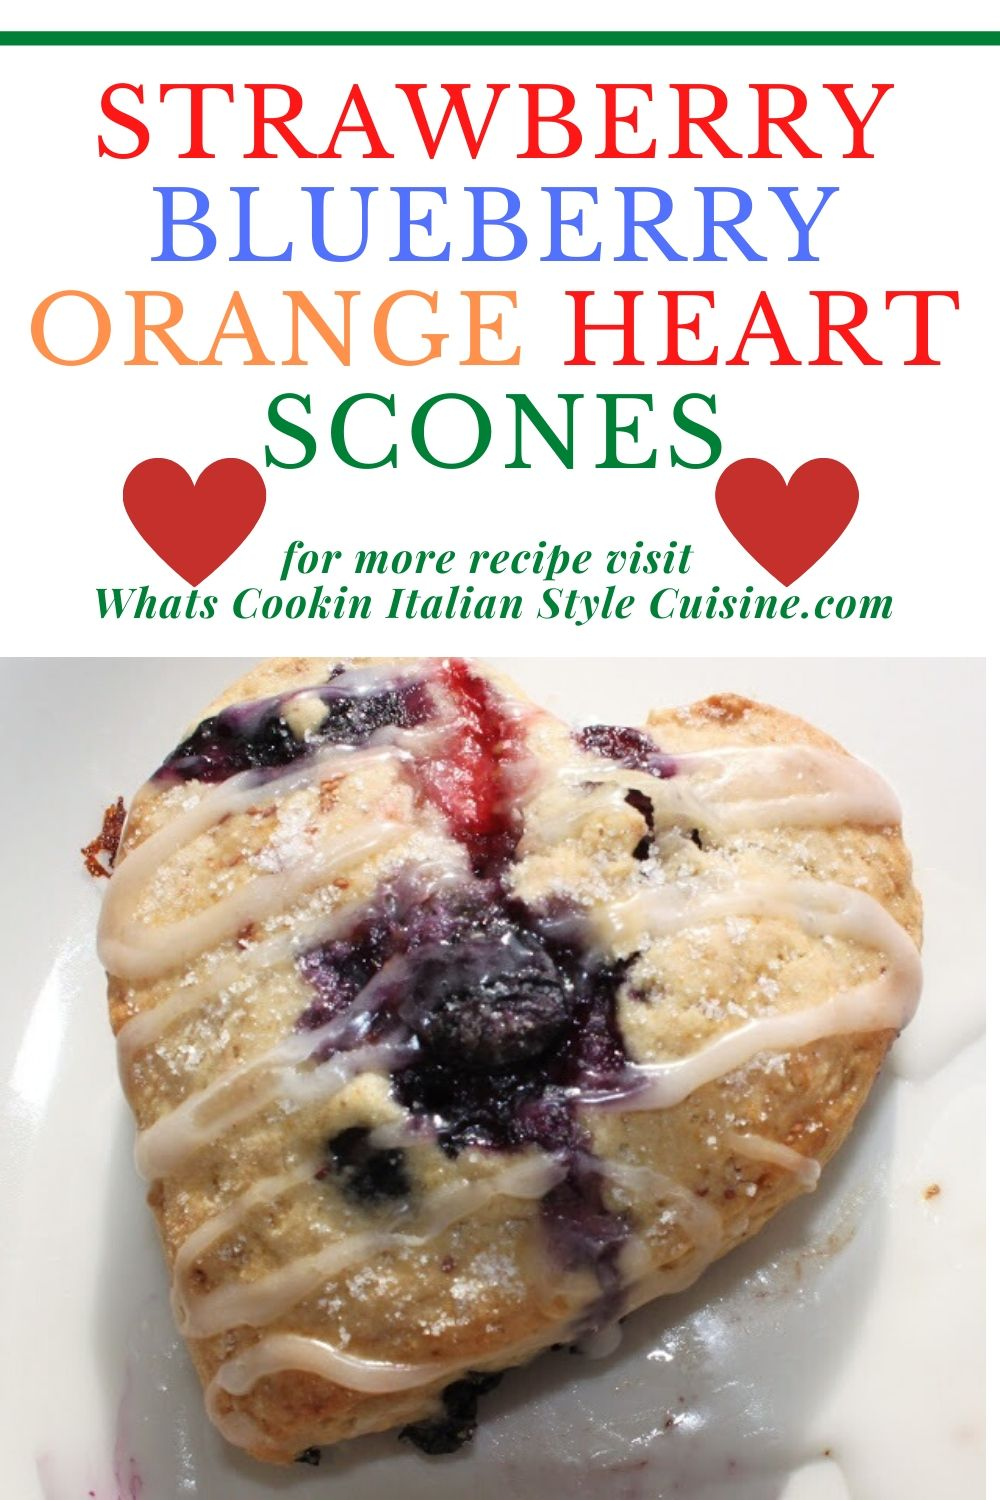 this is a fruit scone for memorial day or 4th of july since it's red white and blue fruits